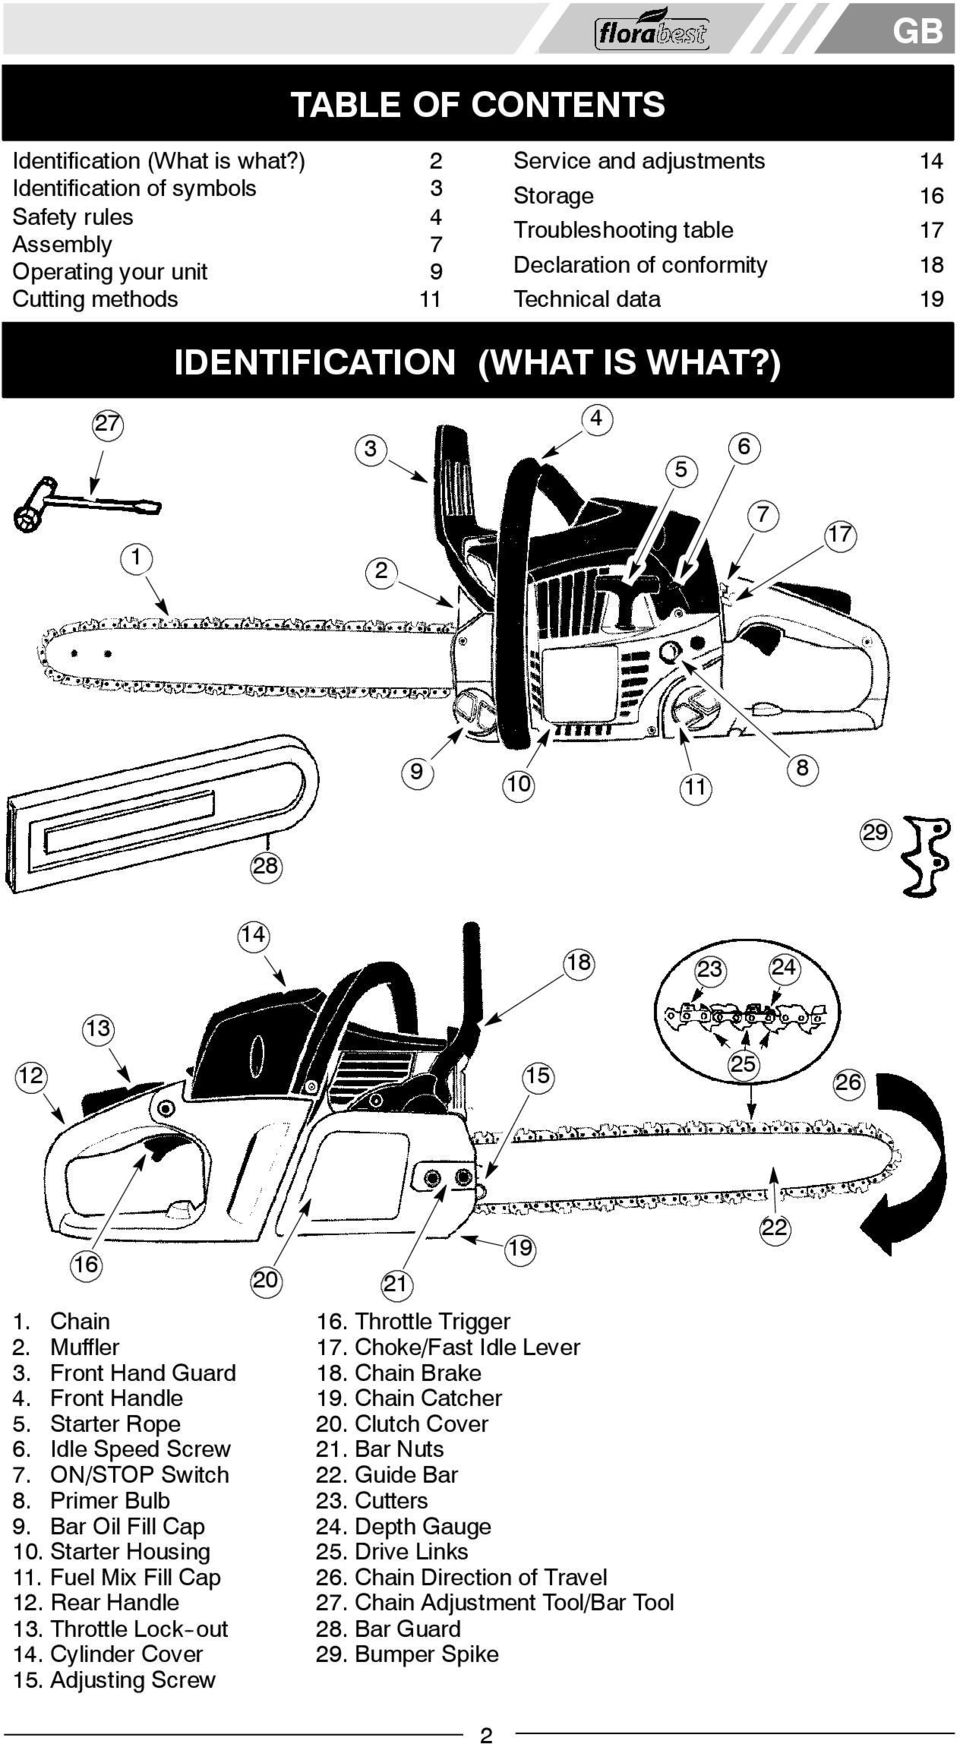 Technical data 19 IDENTICATION (WHAT IS WHAT?) 27 3 4 5 6 1 2 7 17 9 10 11 8 28 29 14 18 23 24 12 13 25 15 26 16 1. Chain 2. Muffler 3. Front Hand Guard 4. Front Handle 5. Starter Rope 6.